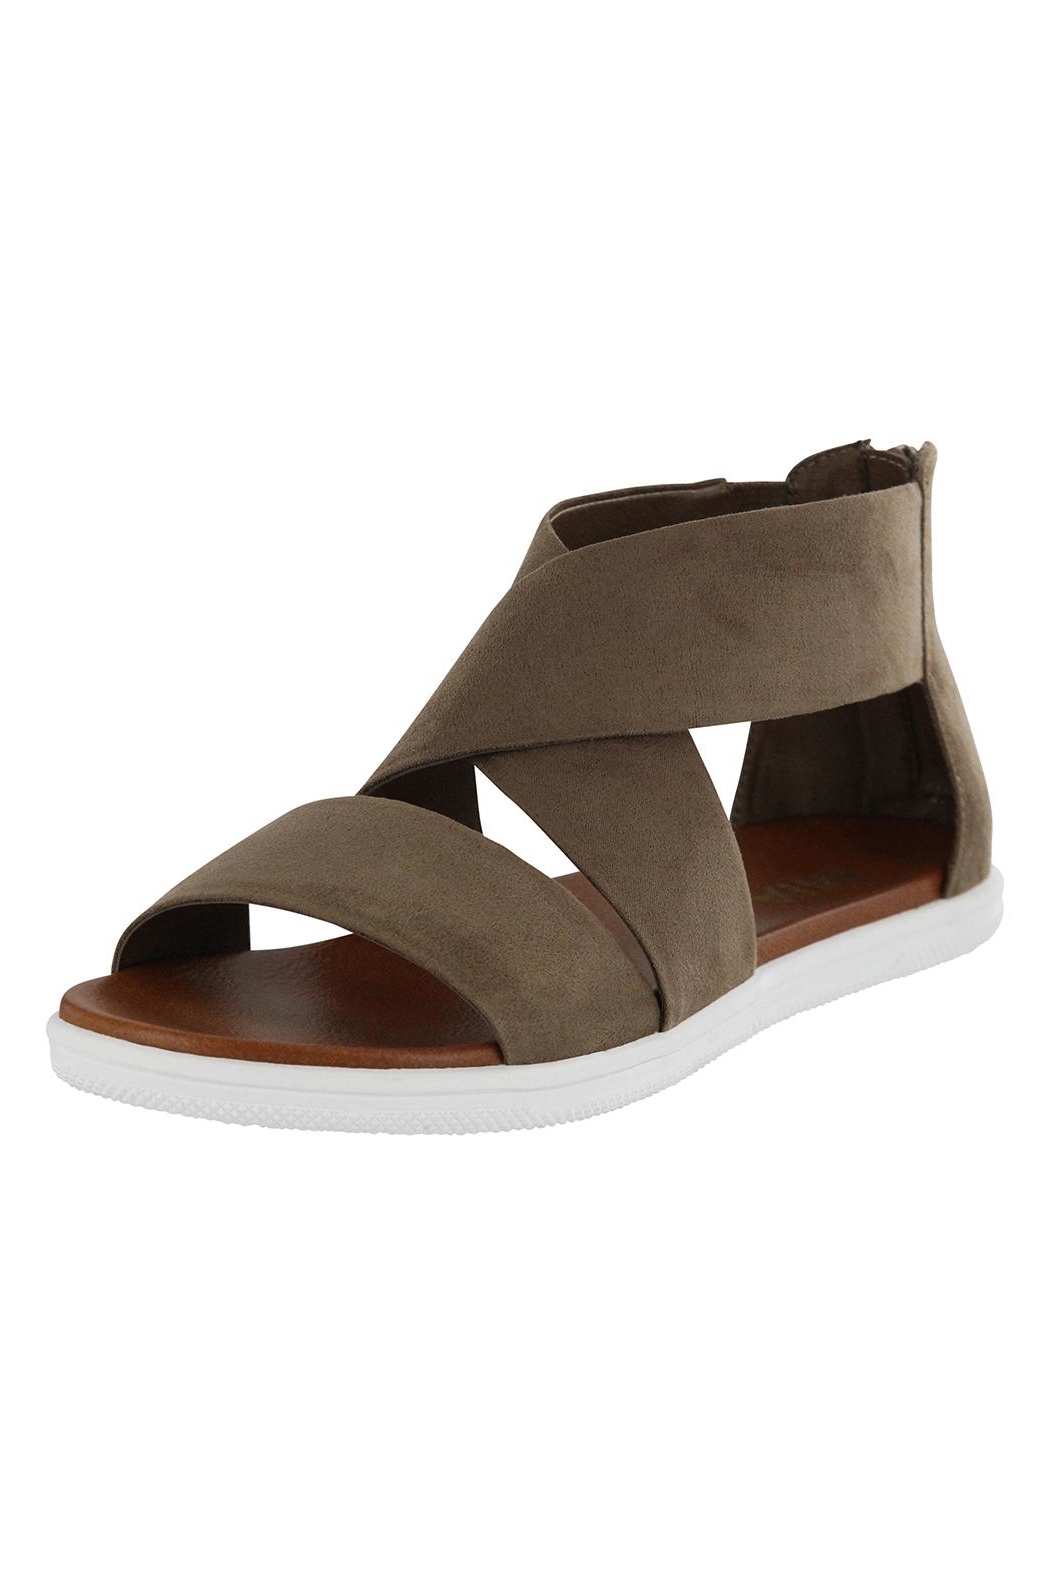 MIA Shoes Deana Sandal - Front Full Image